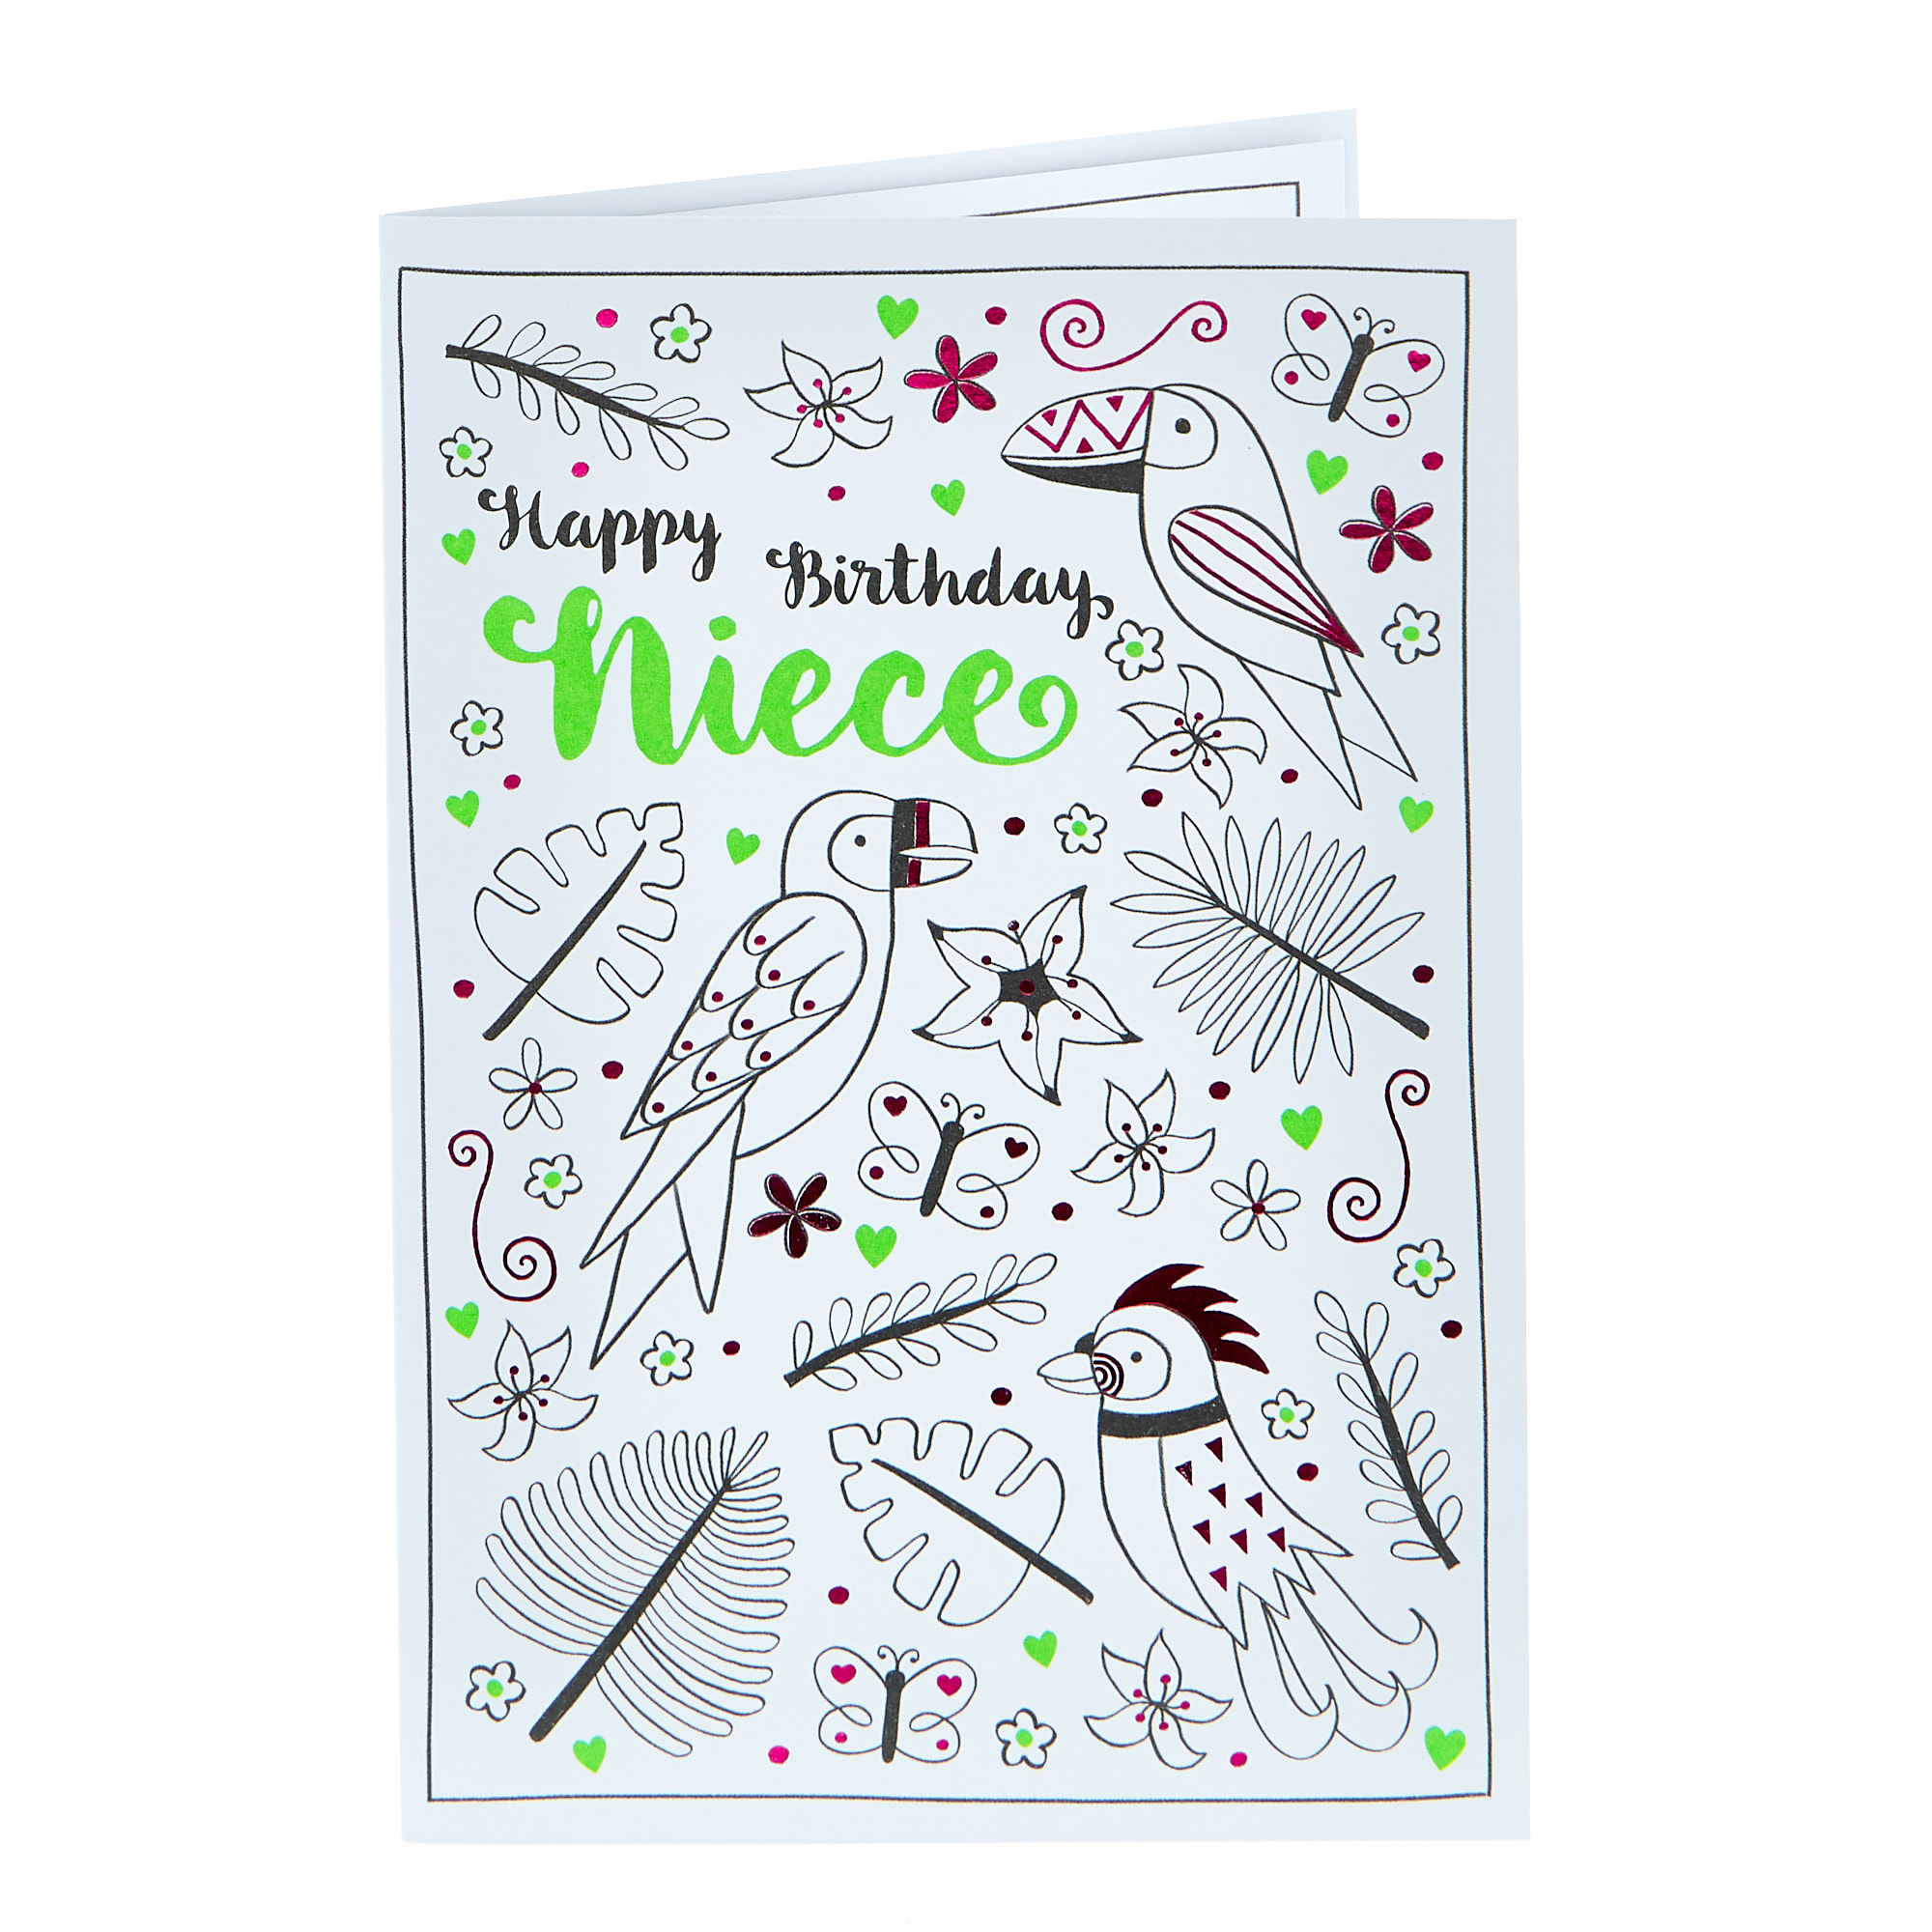 Colour-In Birthday Card - Niece (With Stickers)